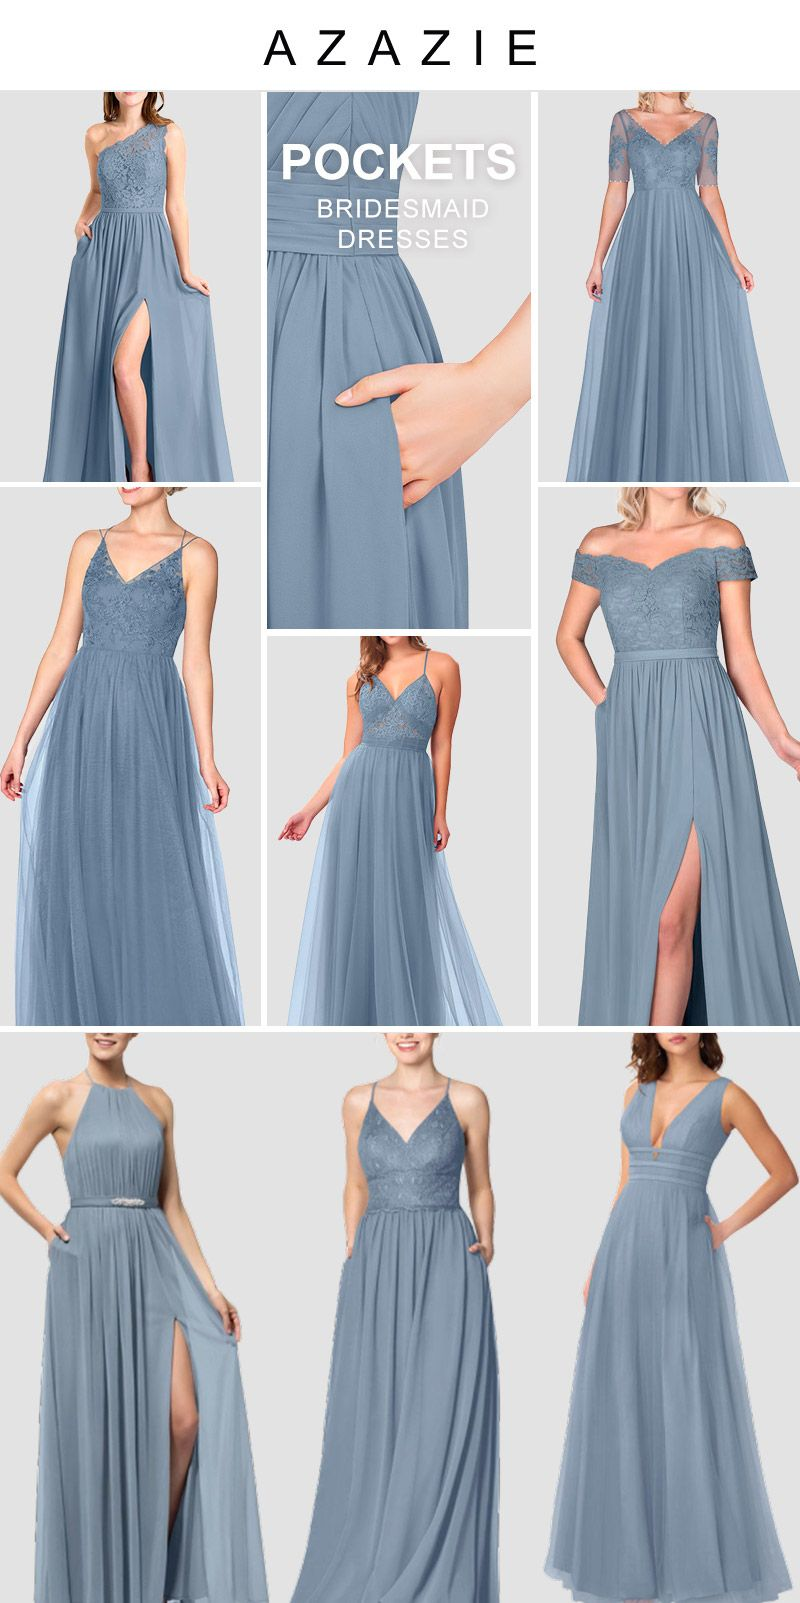 Dusty Blue Bridesmaid Dresses With Pockets In 2020 Pastel Bridesmaid Dresses Blue Bridesmaid Dresses Dusty Blue Bridesmaid Dresses